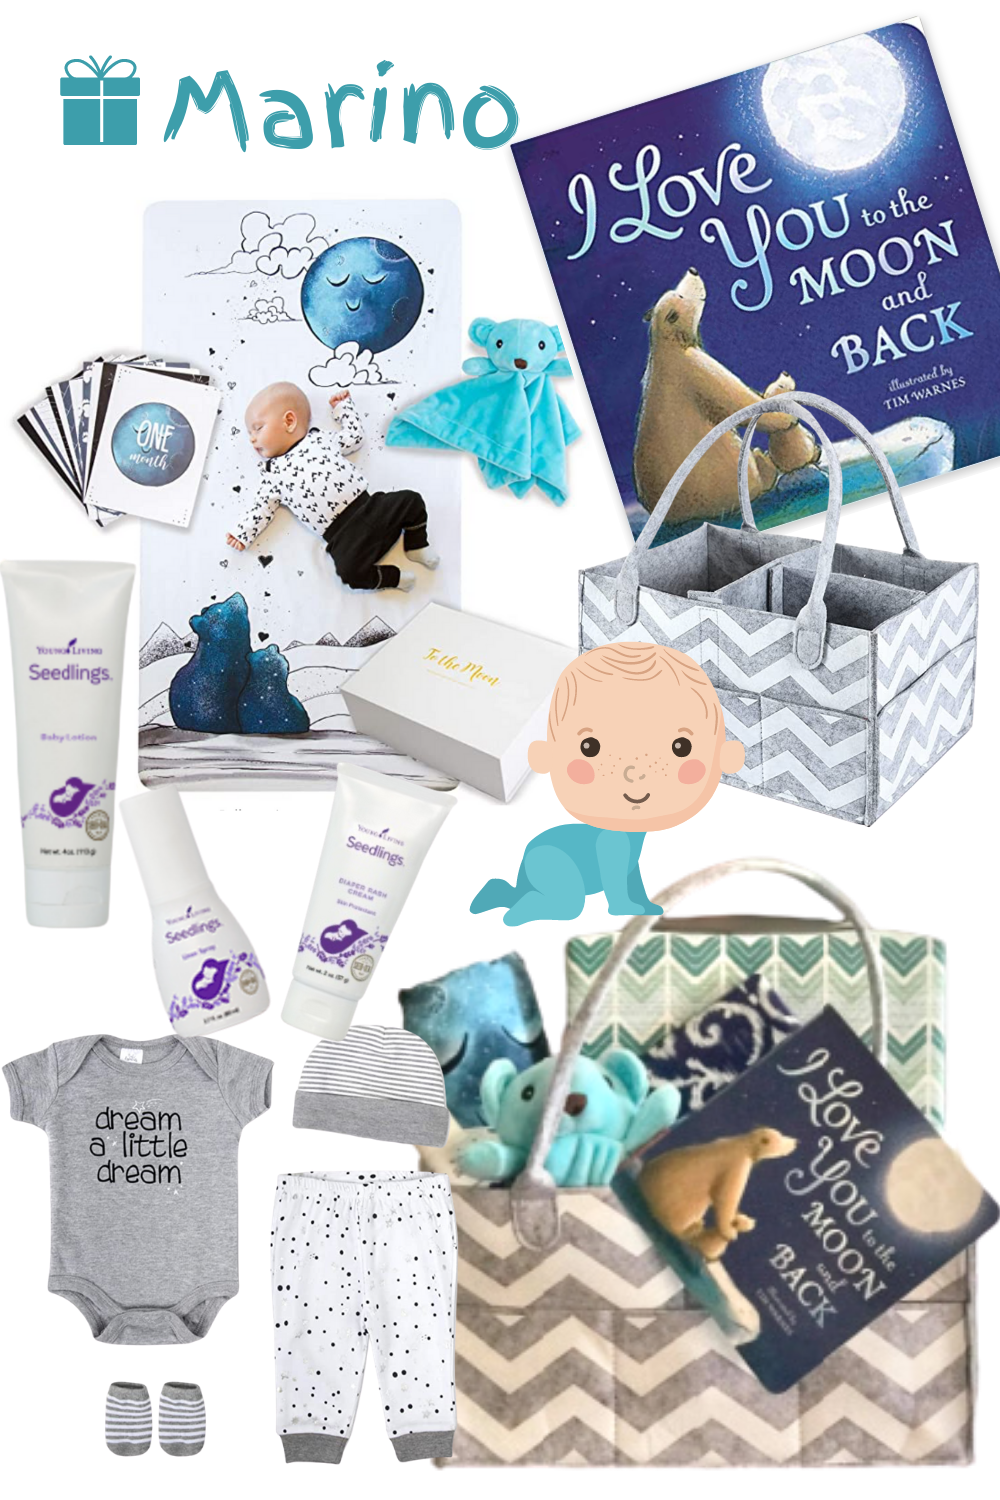 Baby Shower Gift Basket Tips And Inspiration Diy Show Off Diy Decorating And Home Improvement Blogdiy Show Off Diy Decorating And Home Improvement Blog